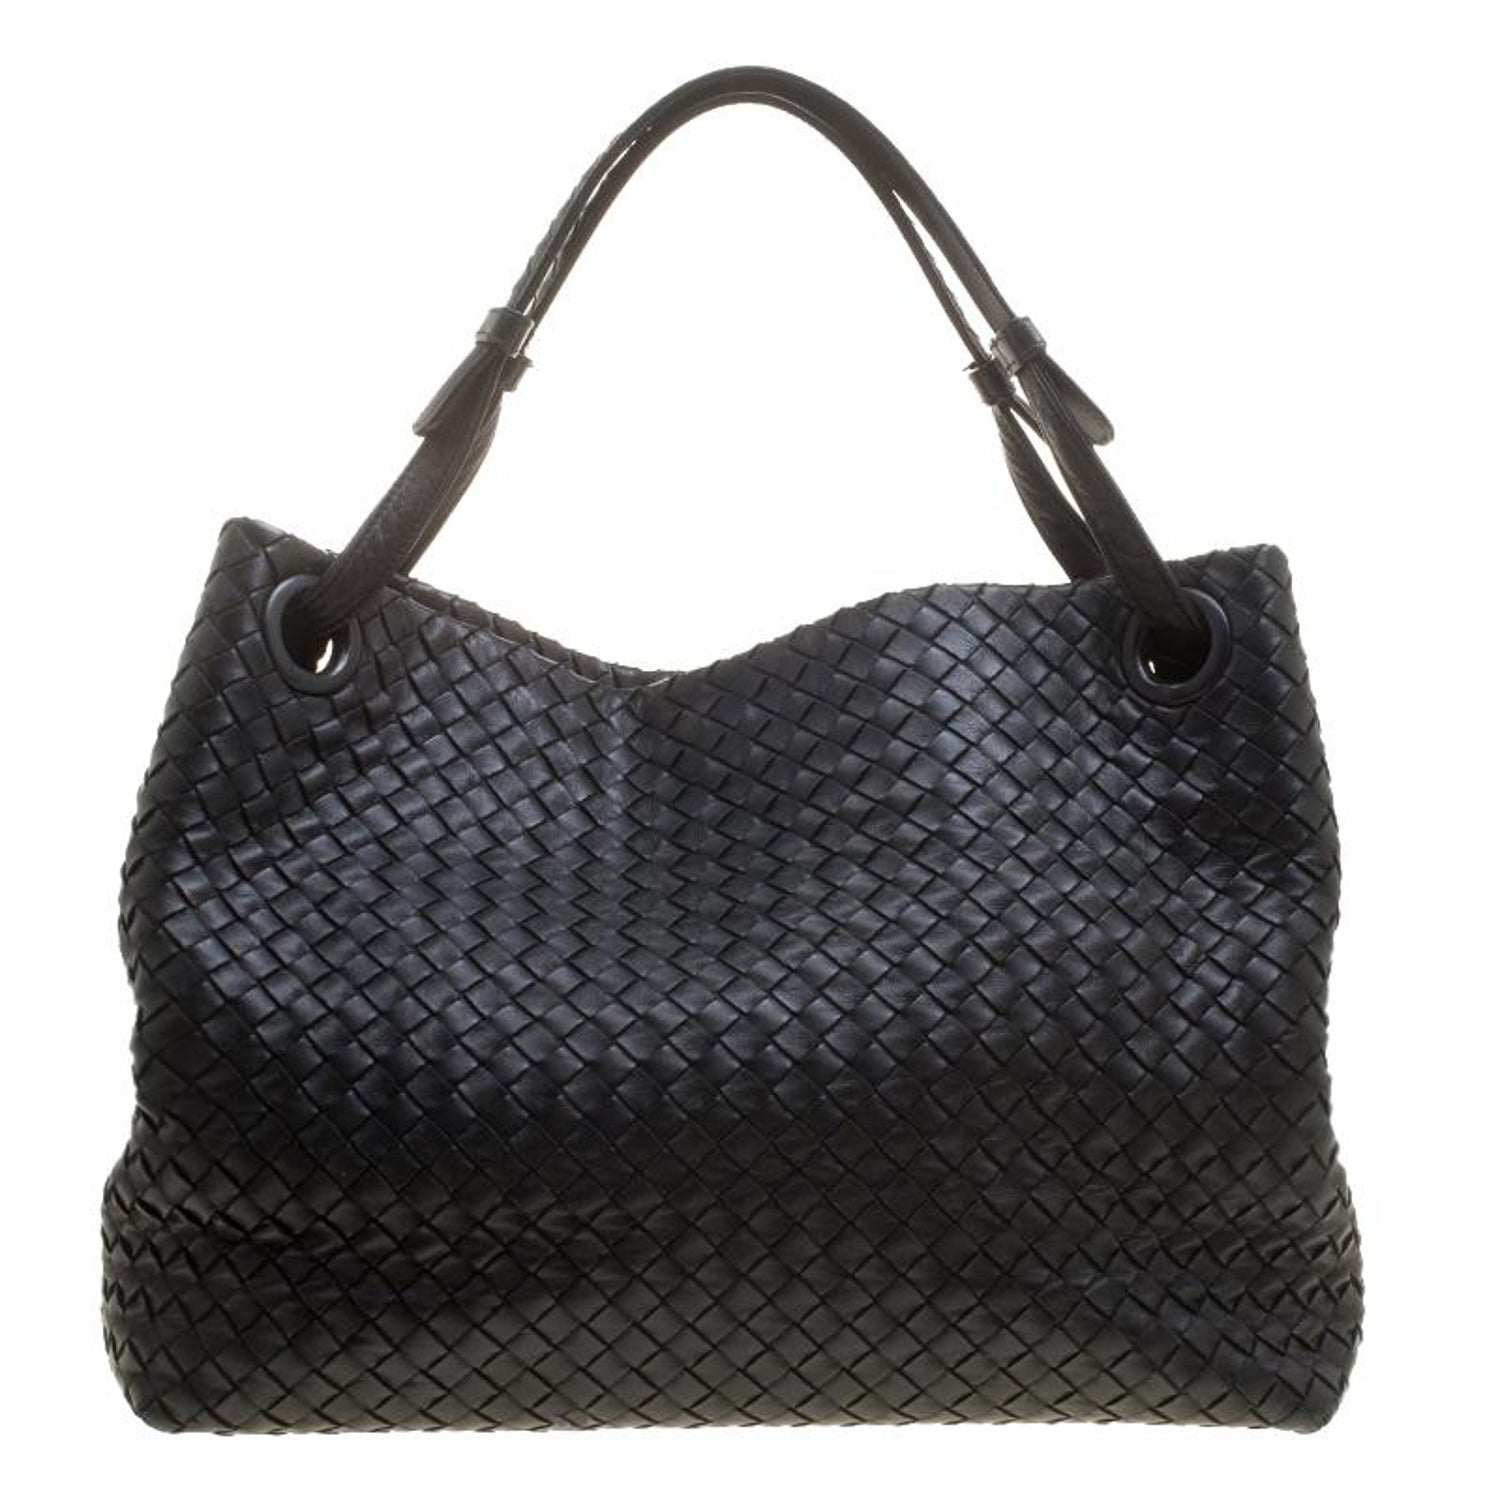 03f765f99a7f Bottega Veneta Black Intrecciato Leather Tote For Sale at 1stdibs